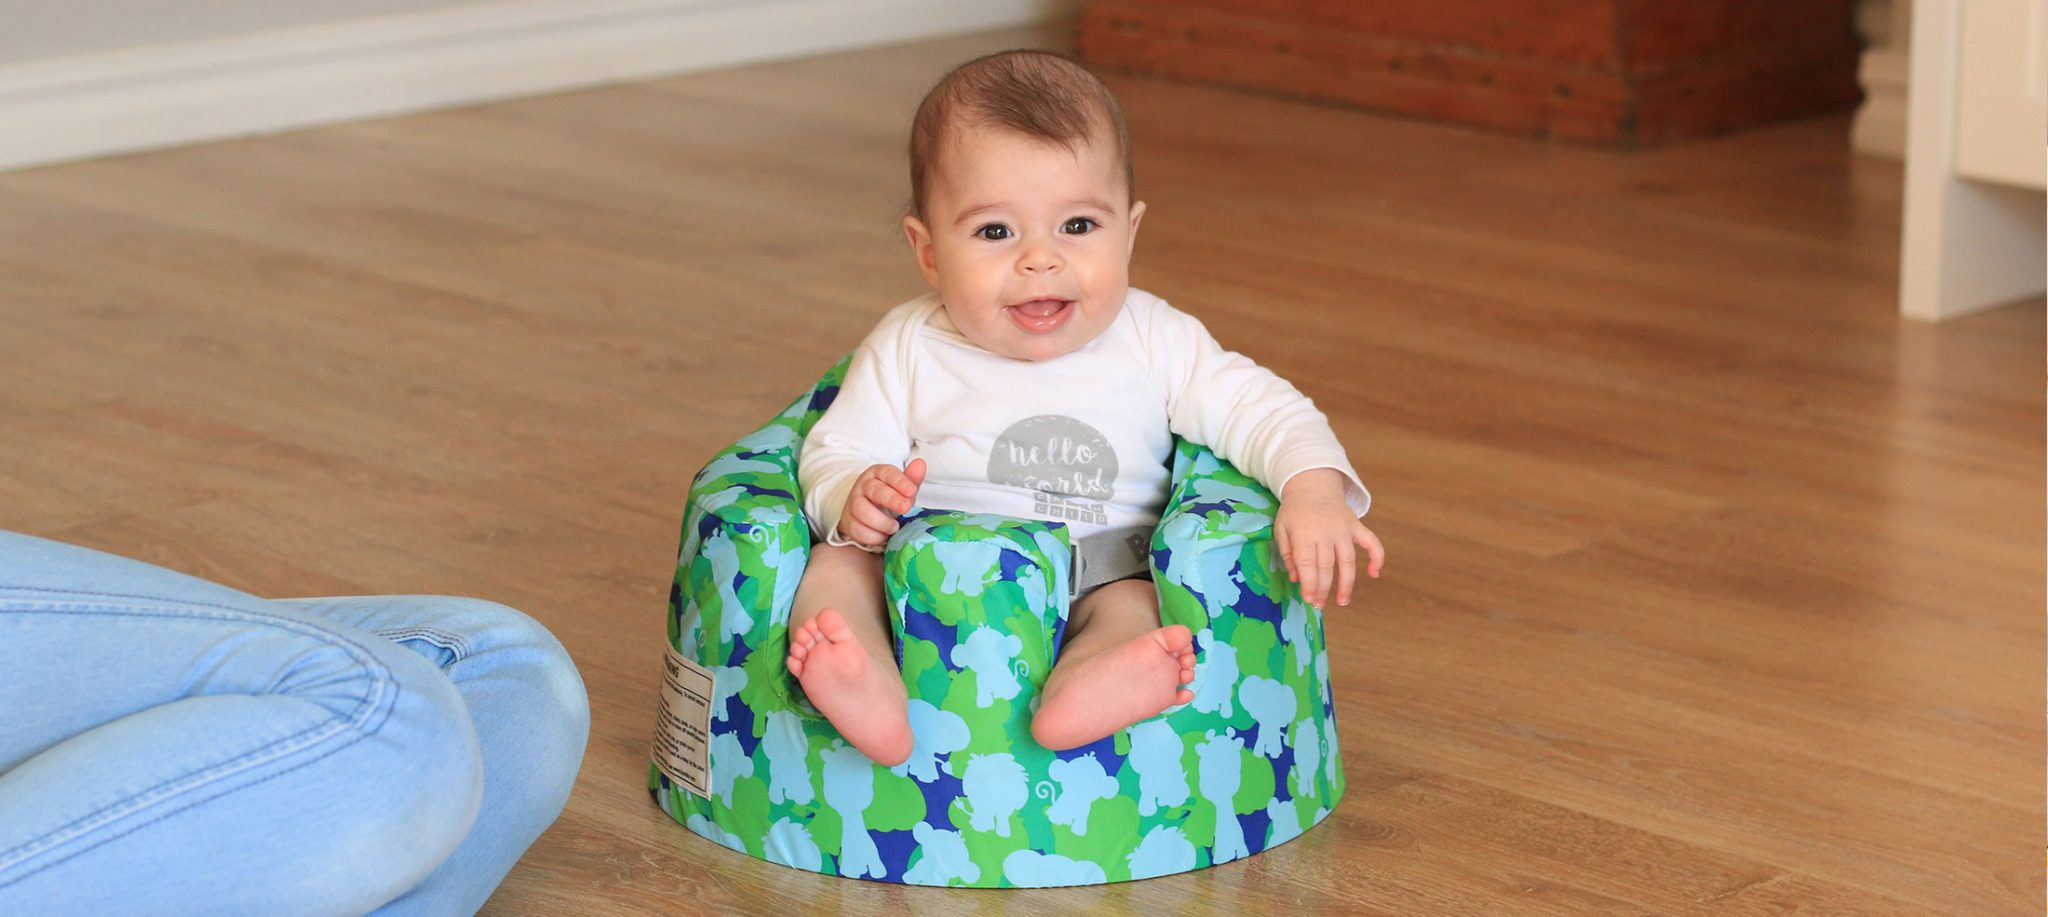 Bumbo Usa High Quality Infant And Toddler Products